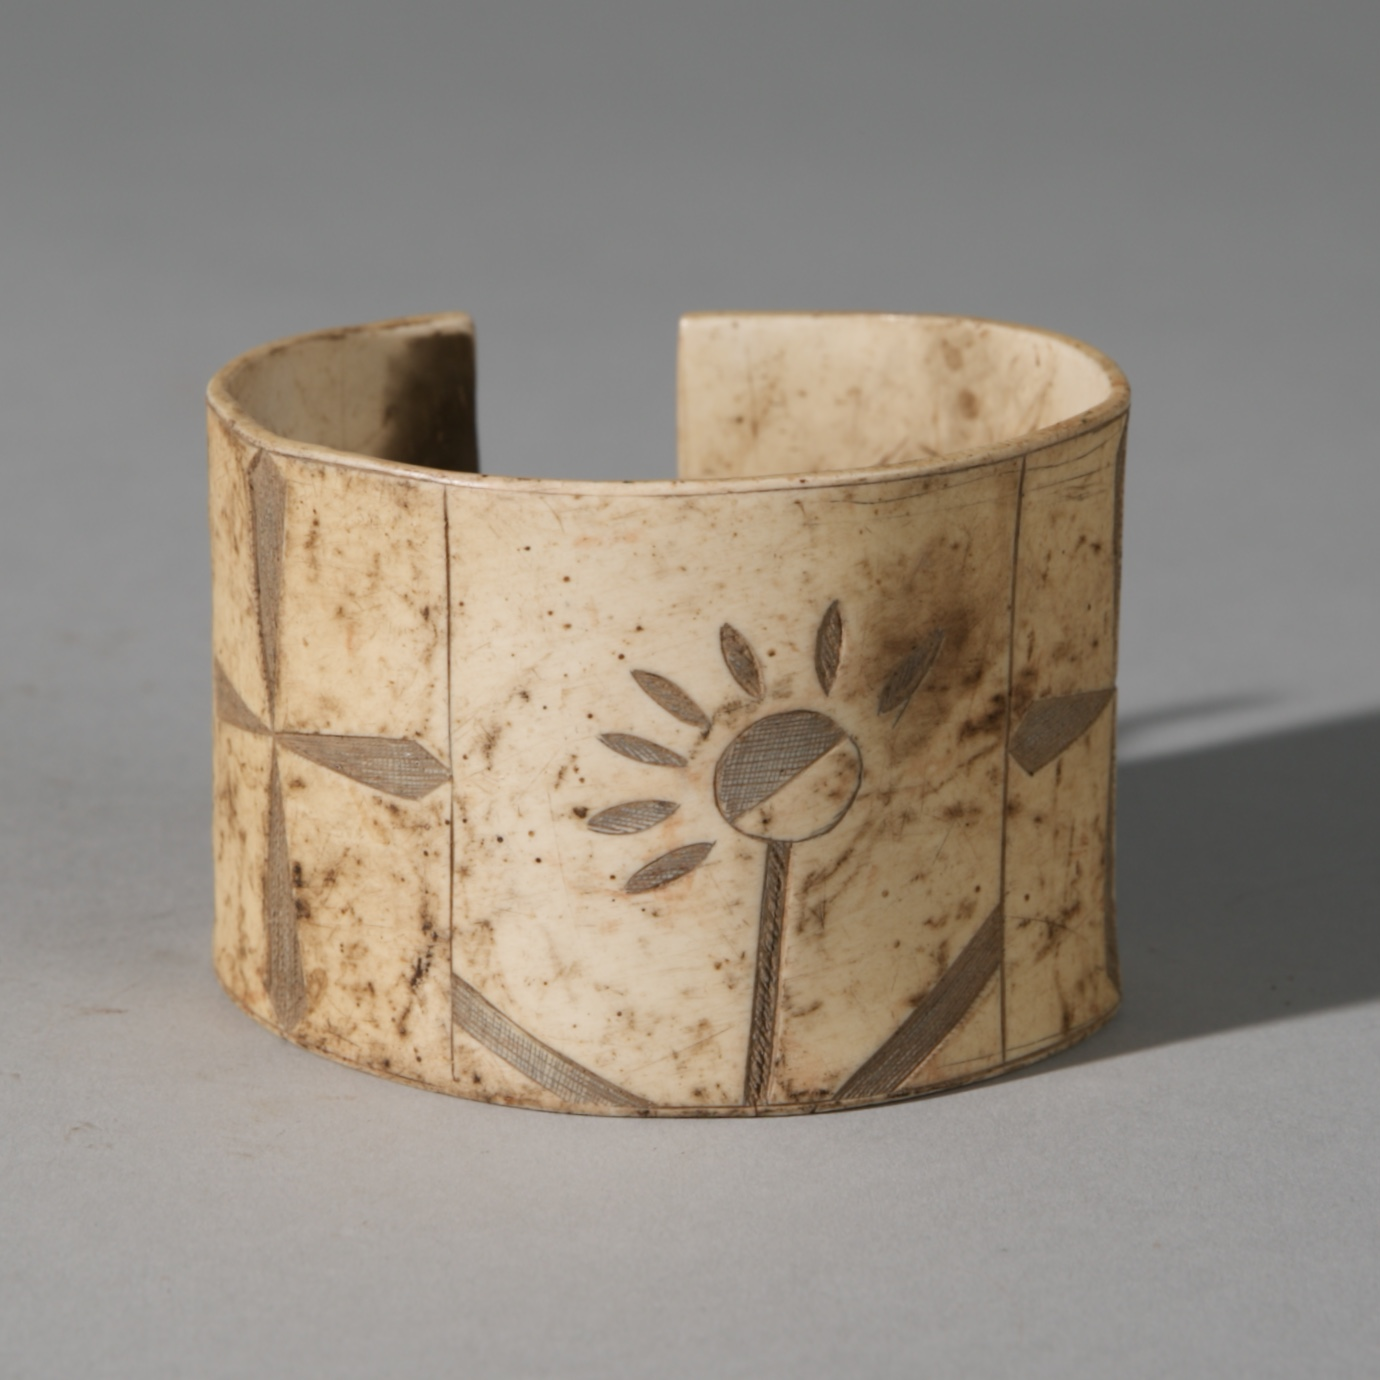 Sold YEARS-A WONDERFUL ENGRAVED CUFF, HIMBA TRIBE OF NAMIBIA SW AFRICA( No 3919 )